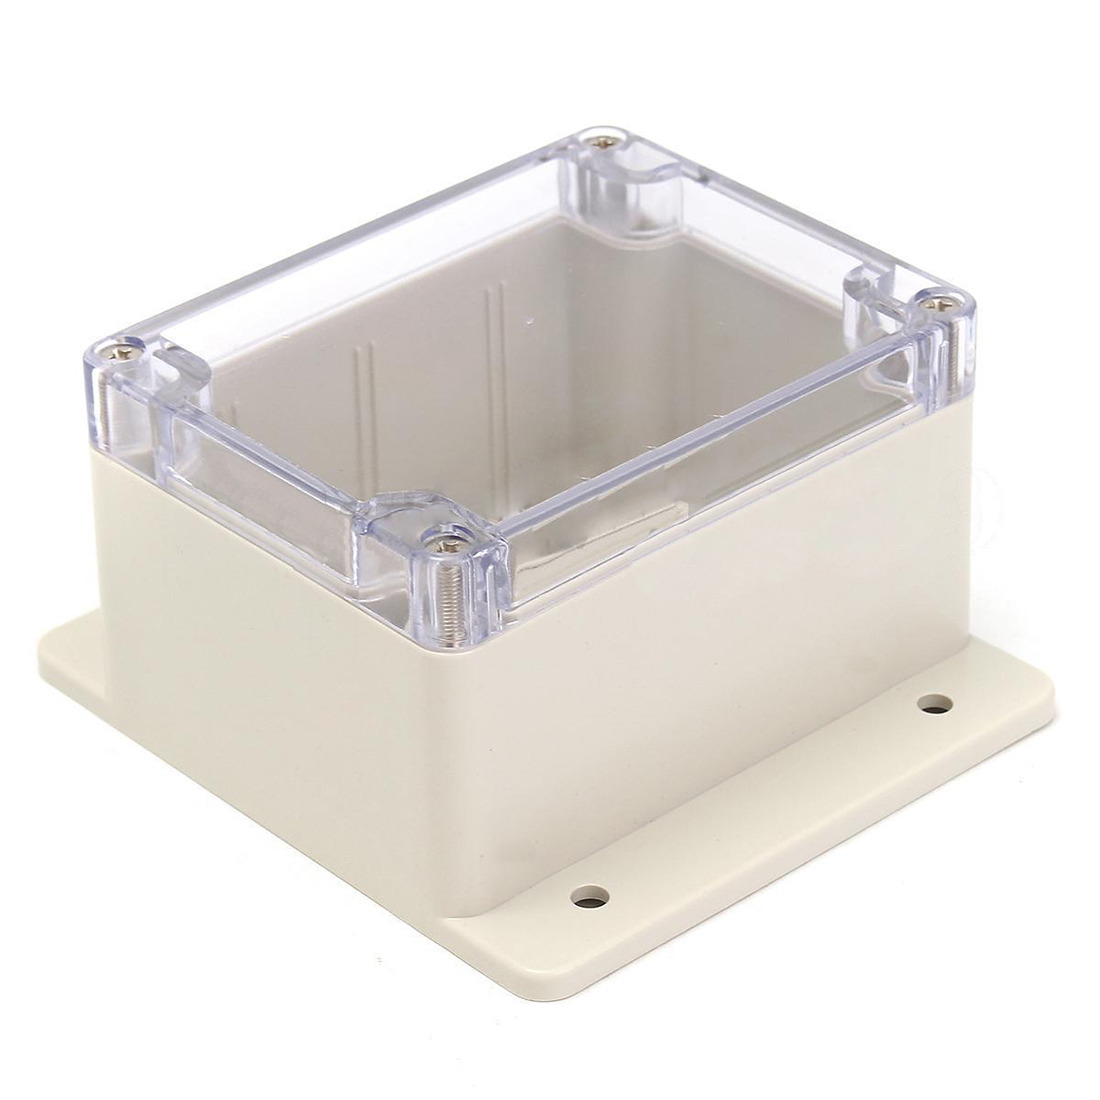 Waterproof Plastic Electronic Junction Project Box Enclosure Case 115x90x68mm 1pc 85 85 50mm waterproof electronic outdoor enclosure project pcb diy junction box abs plastic case electrical connector